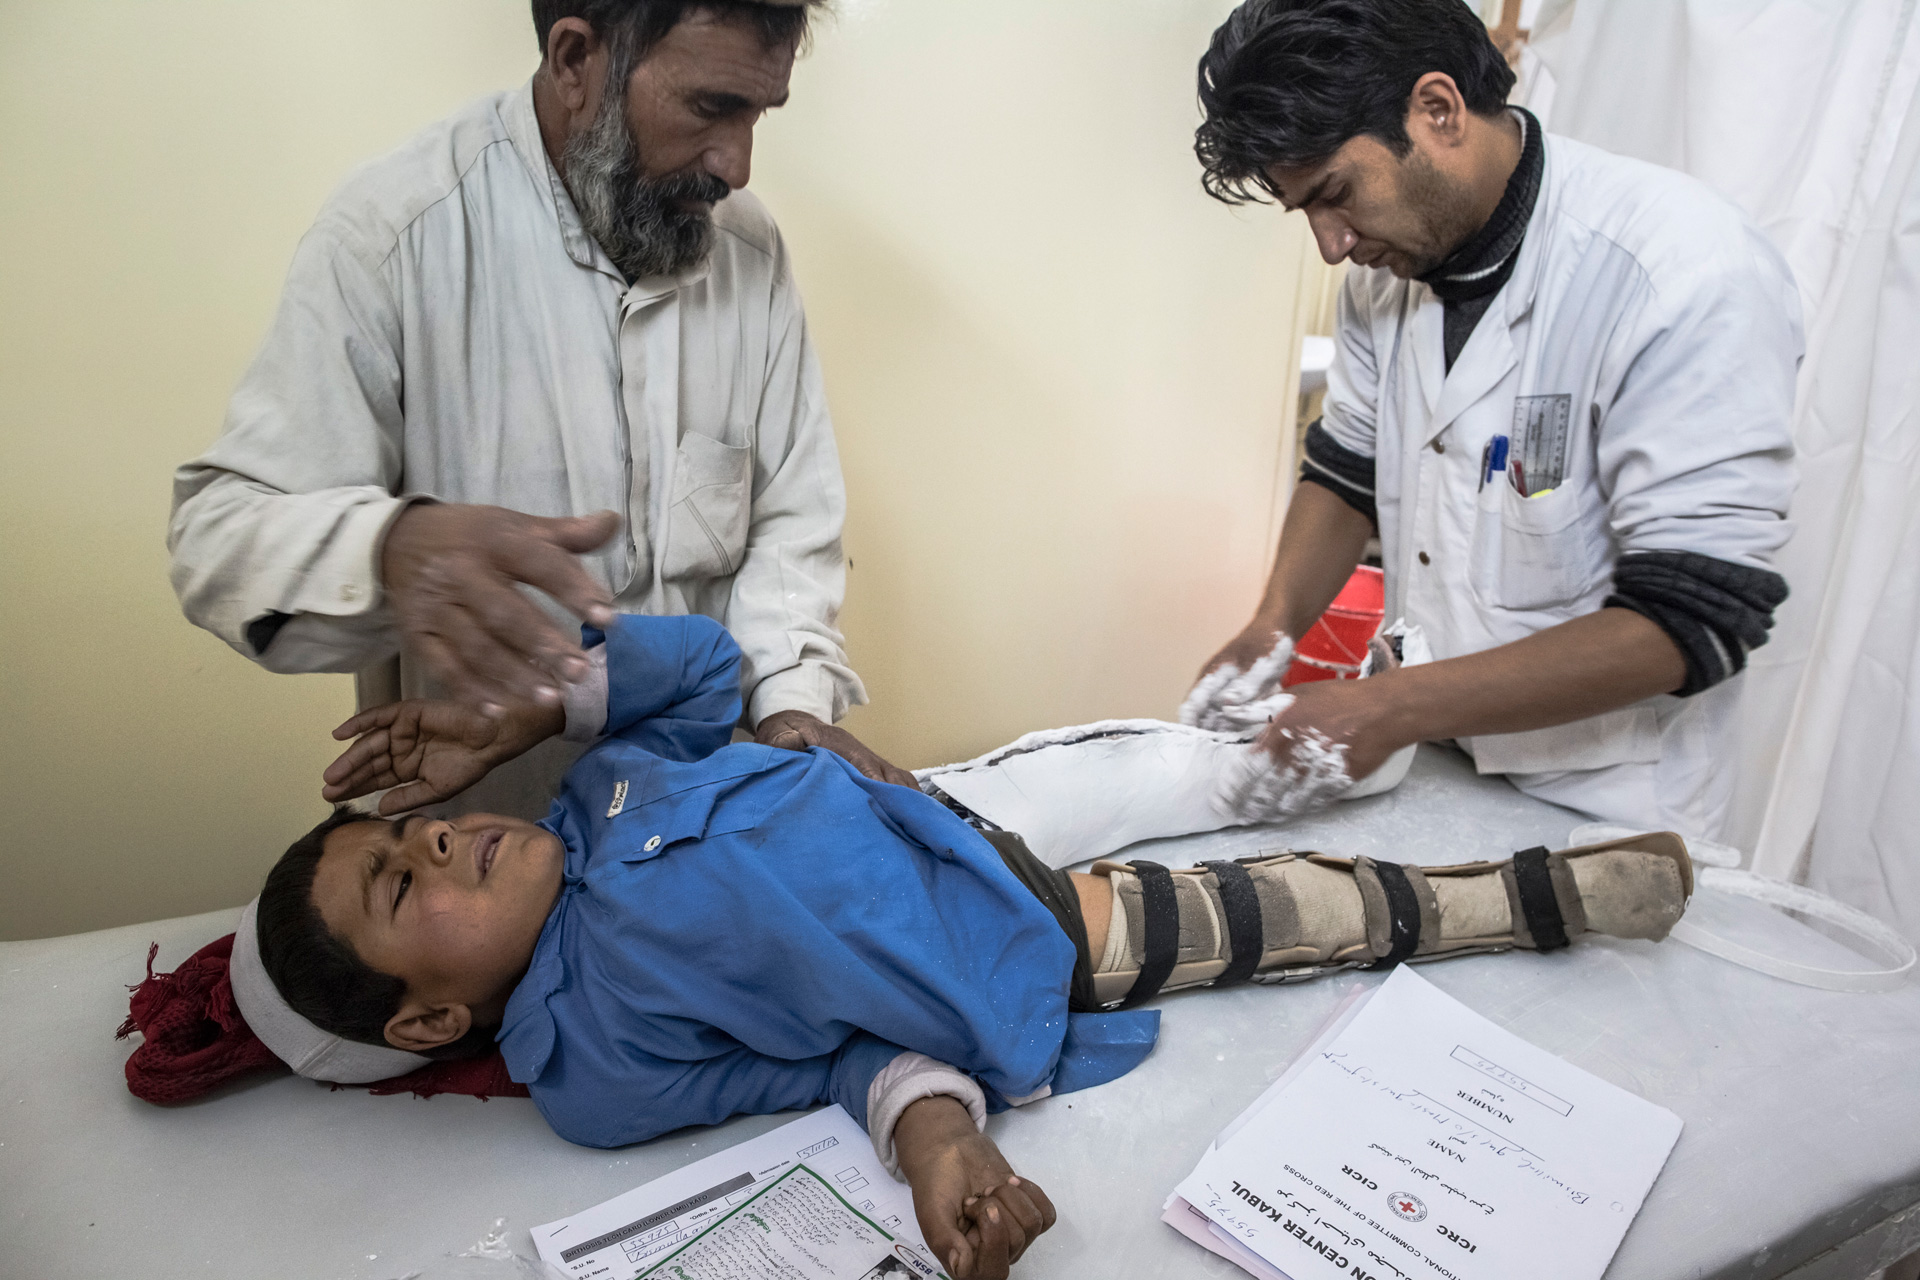 A young boy suffering from polio receives treatment in Kabul, Afghanistan